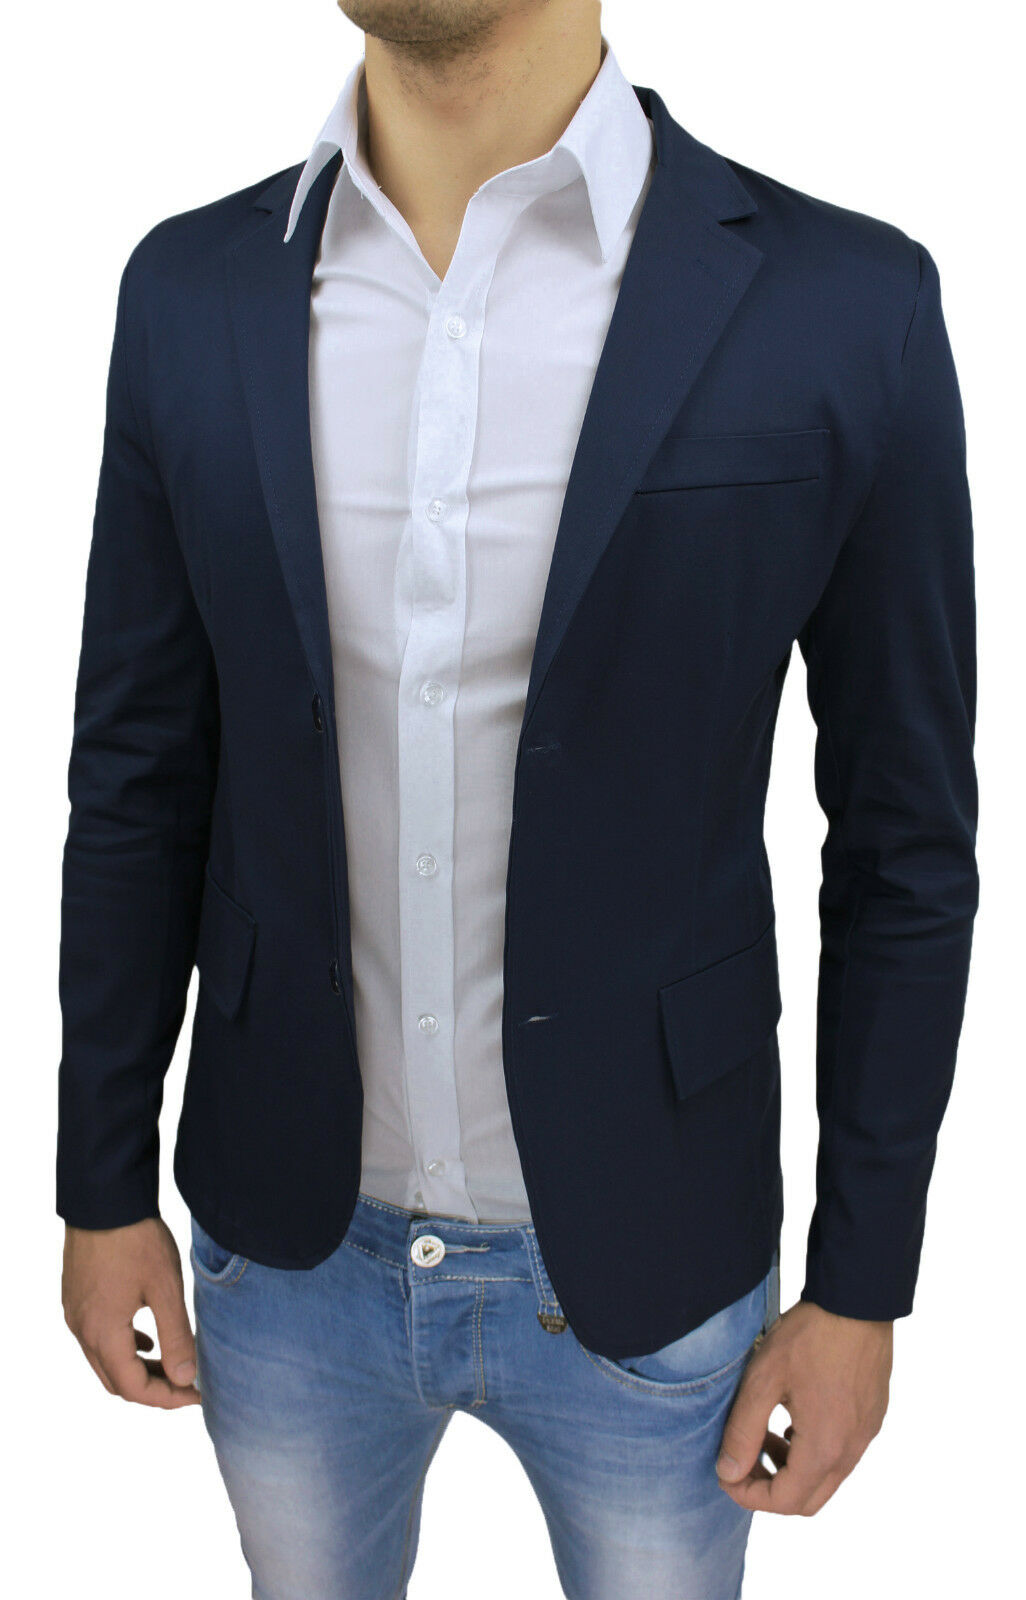 GIACCA BLAZER men SARTORIALE SLIM FIT SUPER ADERENTE blue SCURO S M L XL XXL 3XL